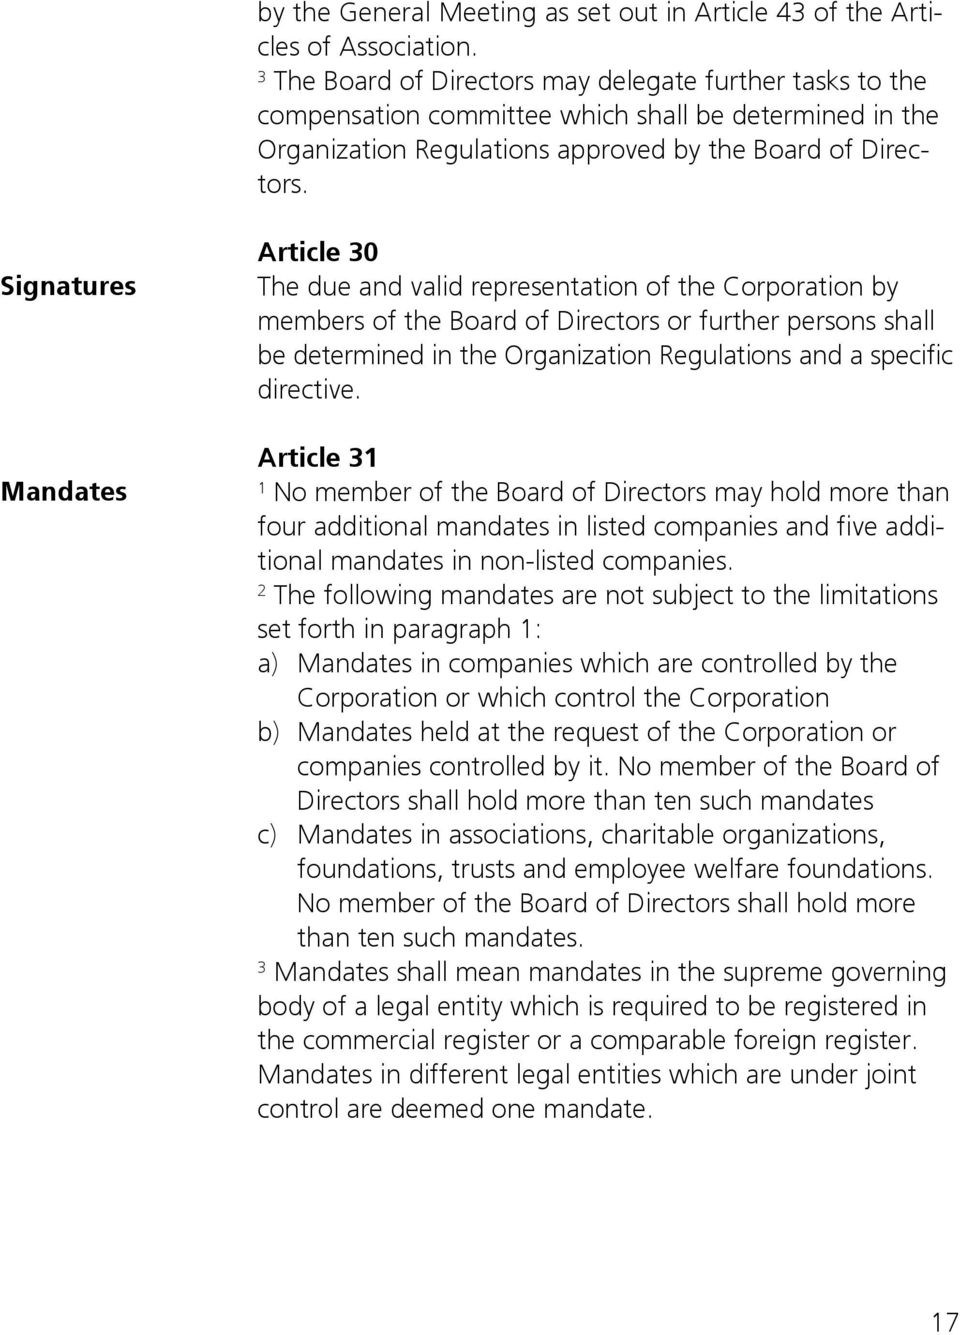 Signatures Mandates Article 30 The due and valid representation of the Corporation by members of the Board of Directors or further persons shall be determined in the Organization Regulations and a